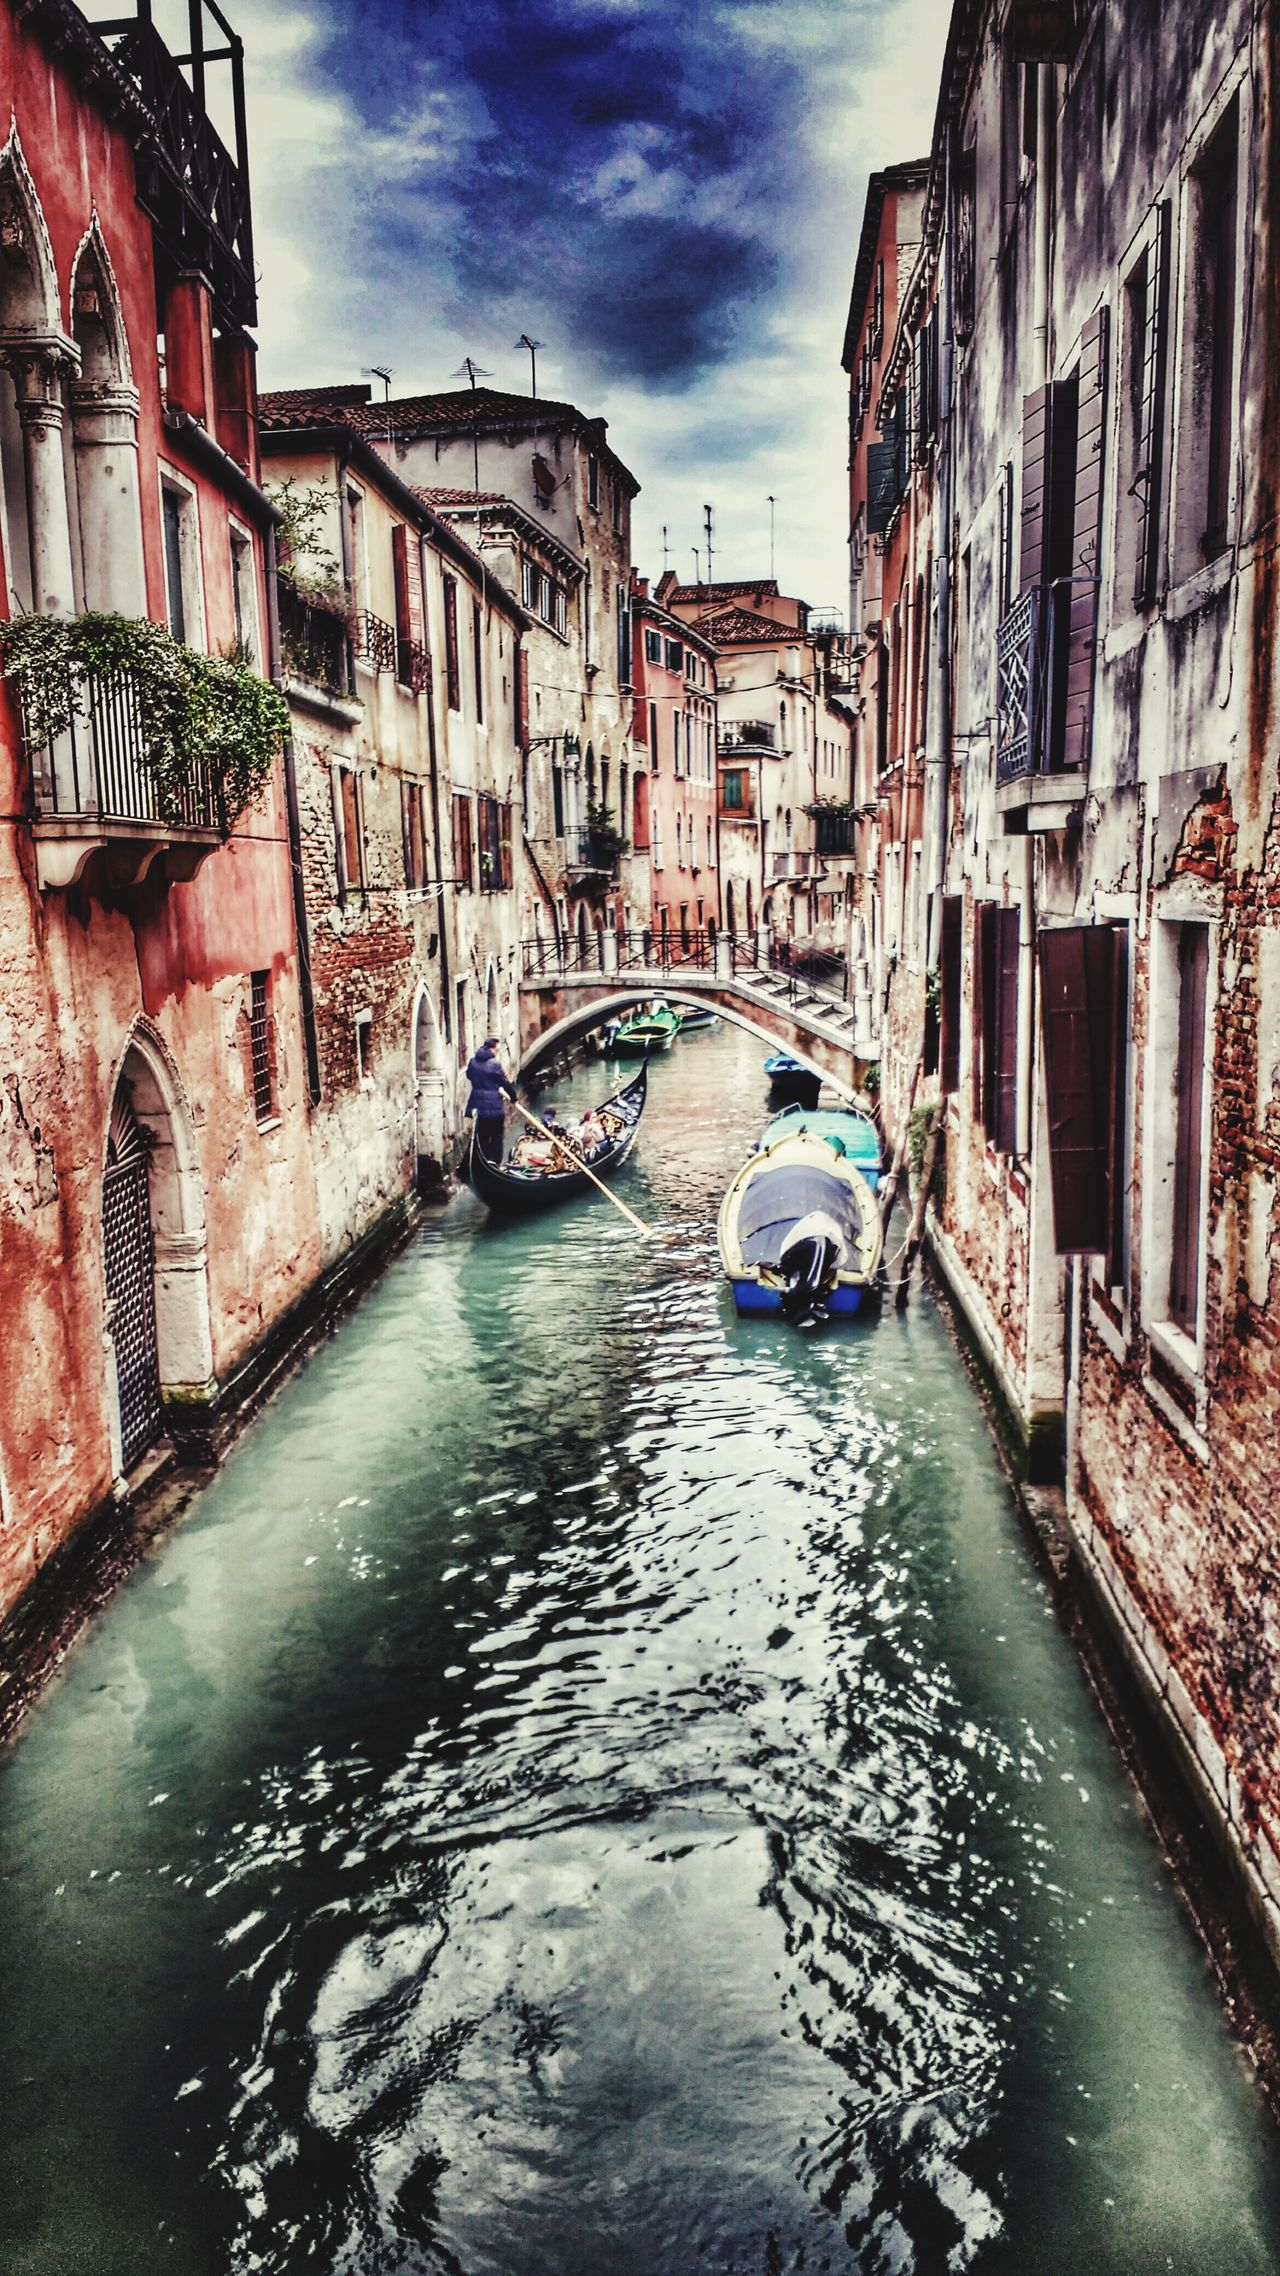 Canals Canals And Waterways Gondole In Venice Old Buildings Old-fashioned The Week Of Eyeem March Showcase Marchphotochallenge Water_collection Water Colors Pastel Colors Hidden Gems